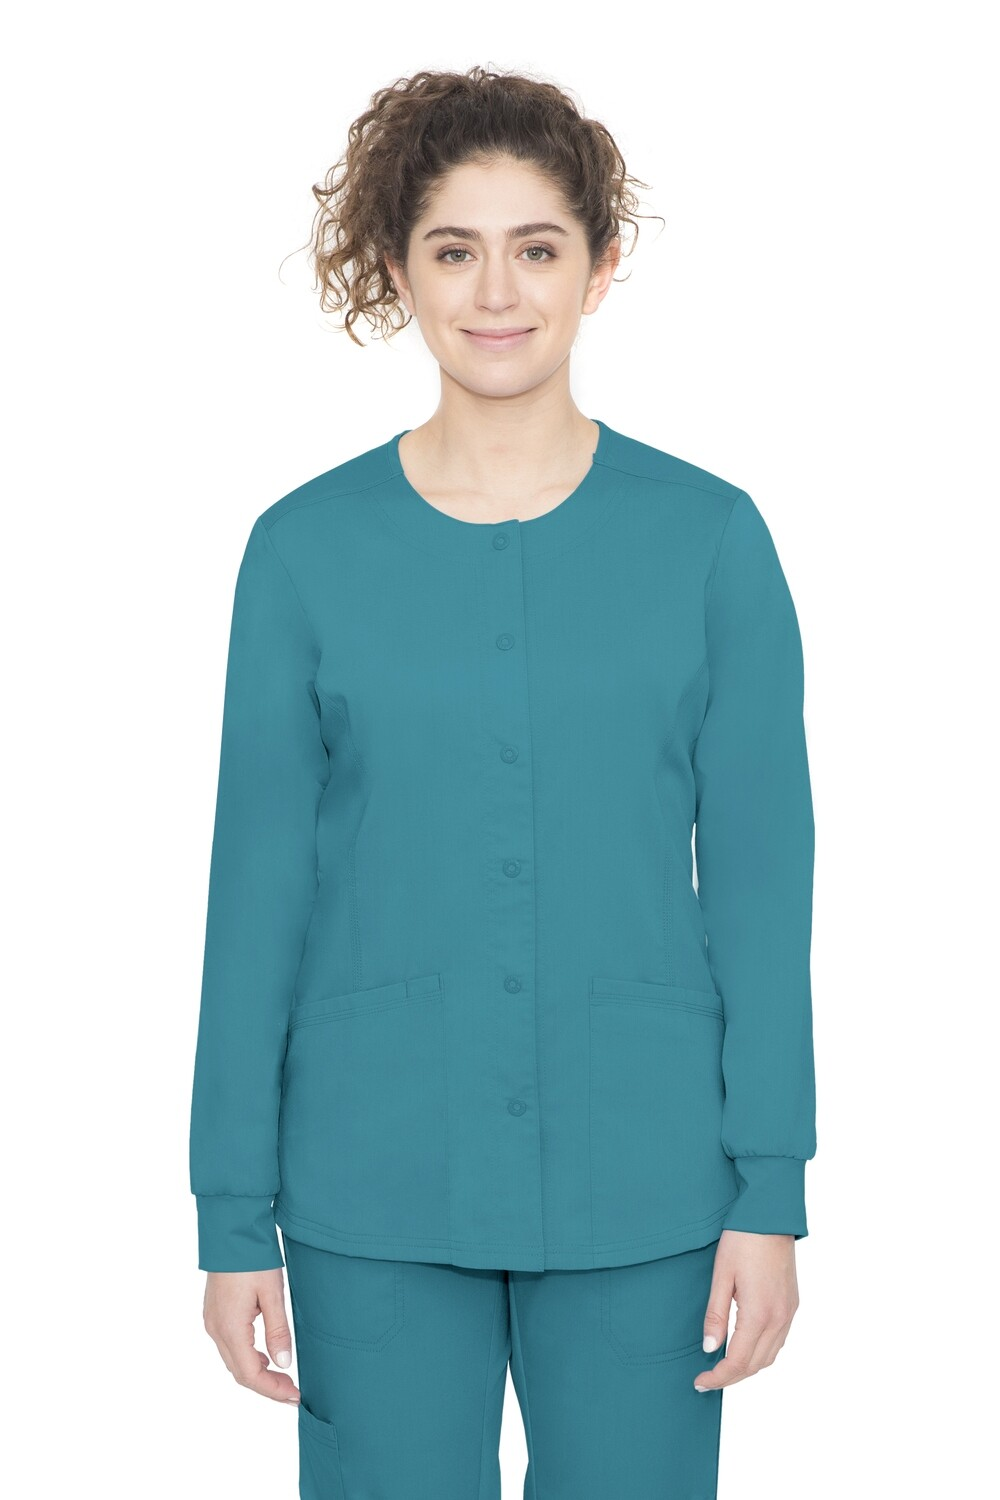 5063 DAISY JACKET TEAL 2XL